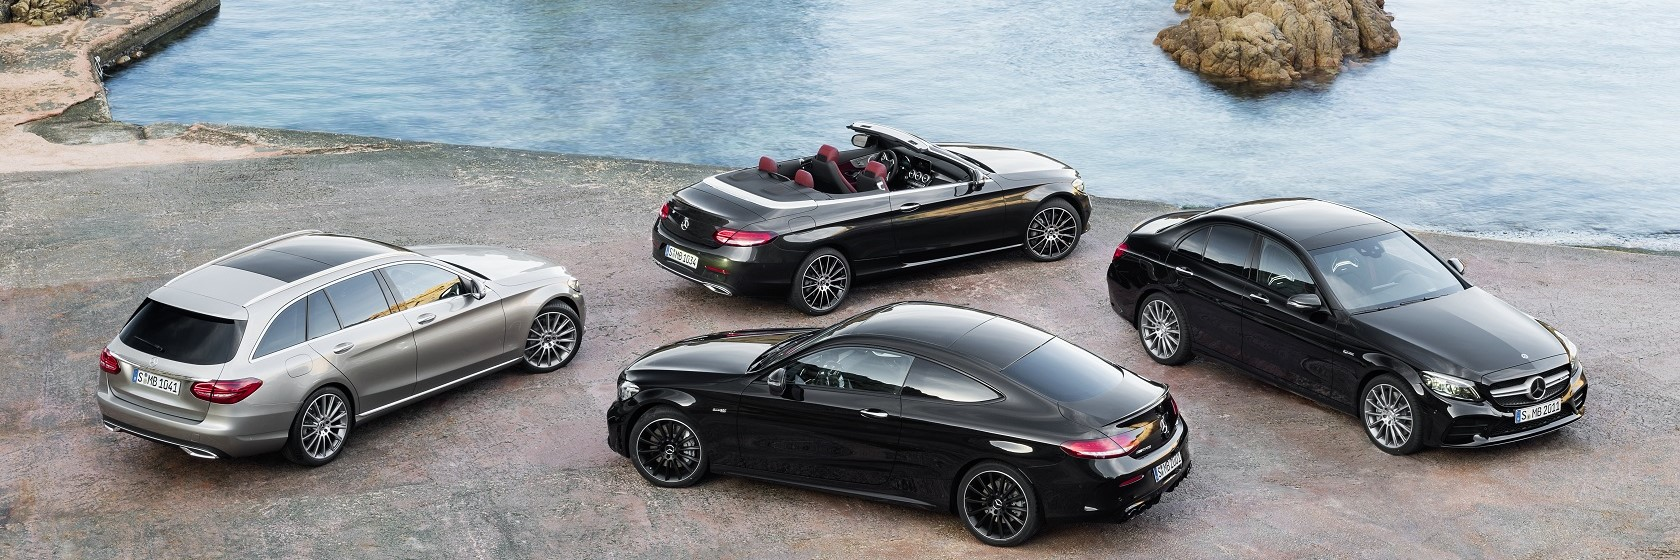 model-overview-image